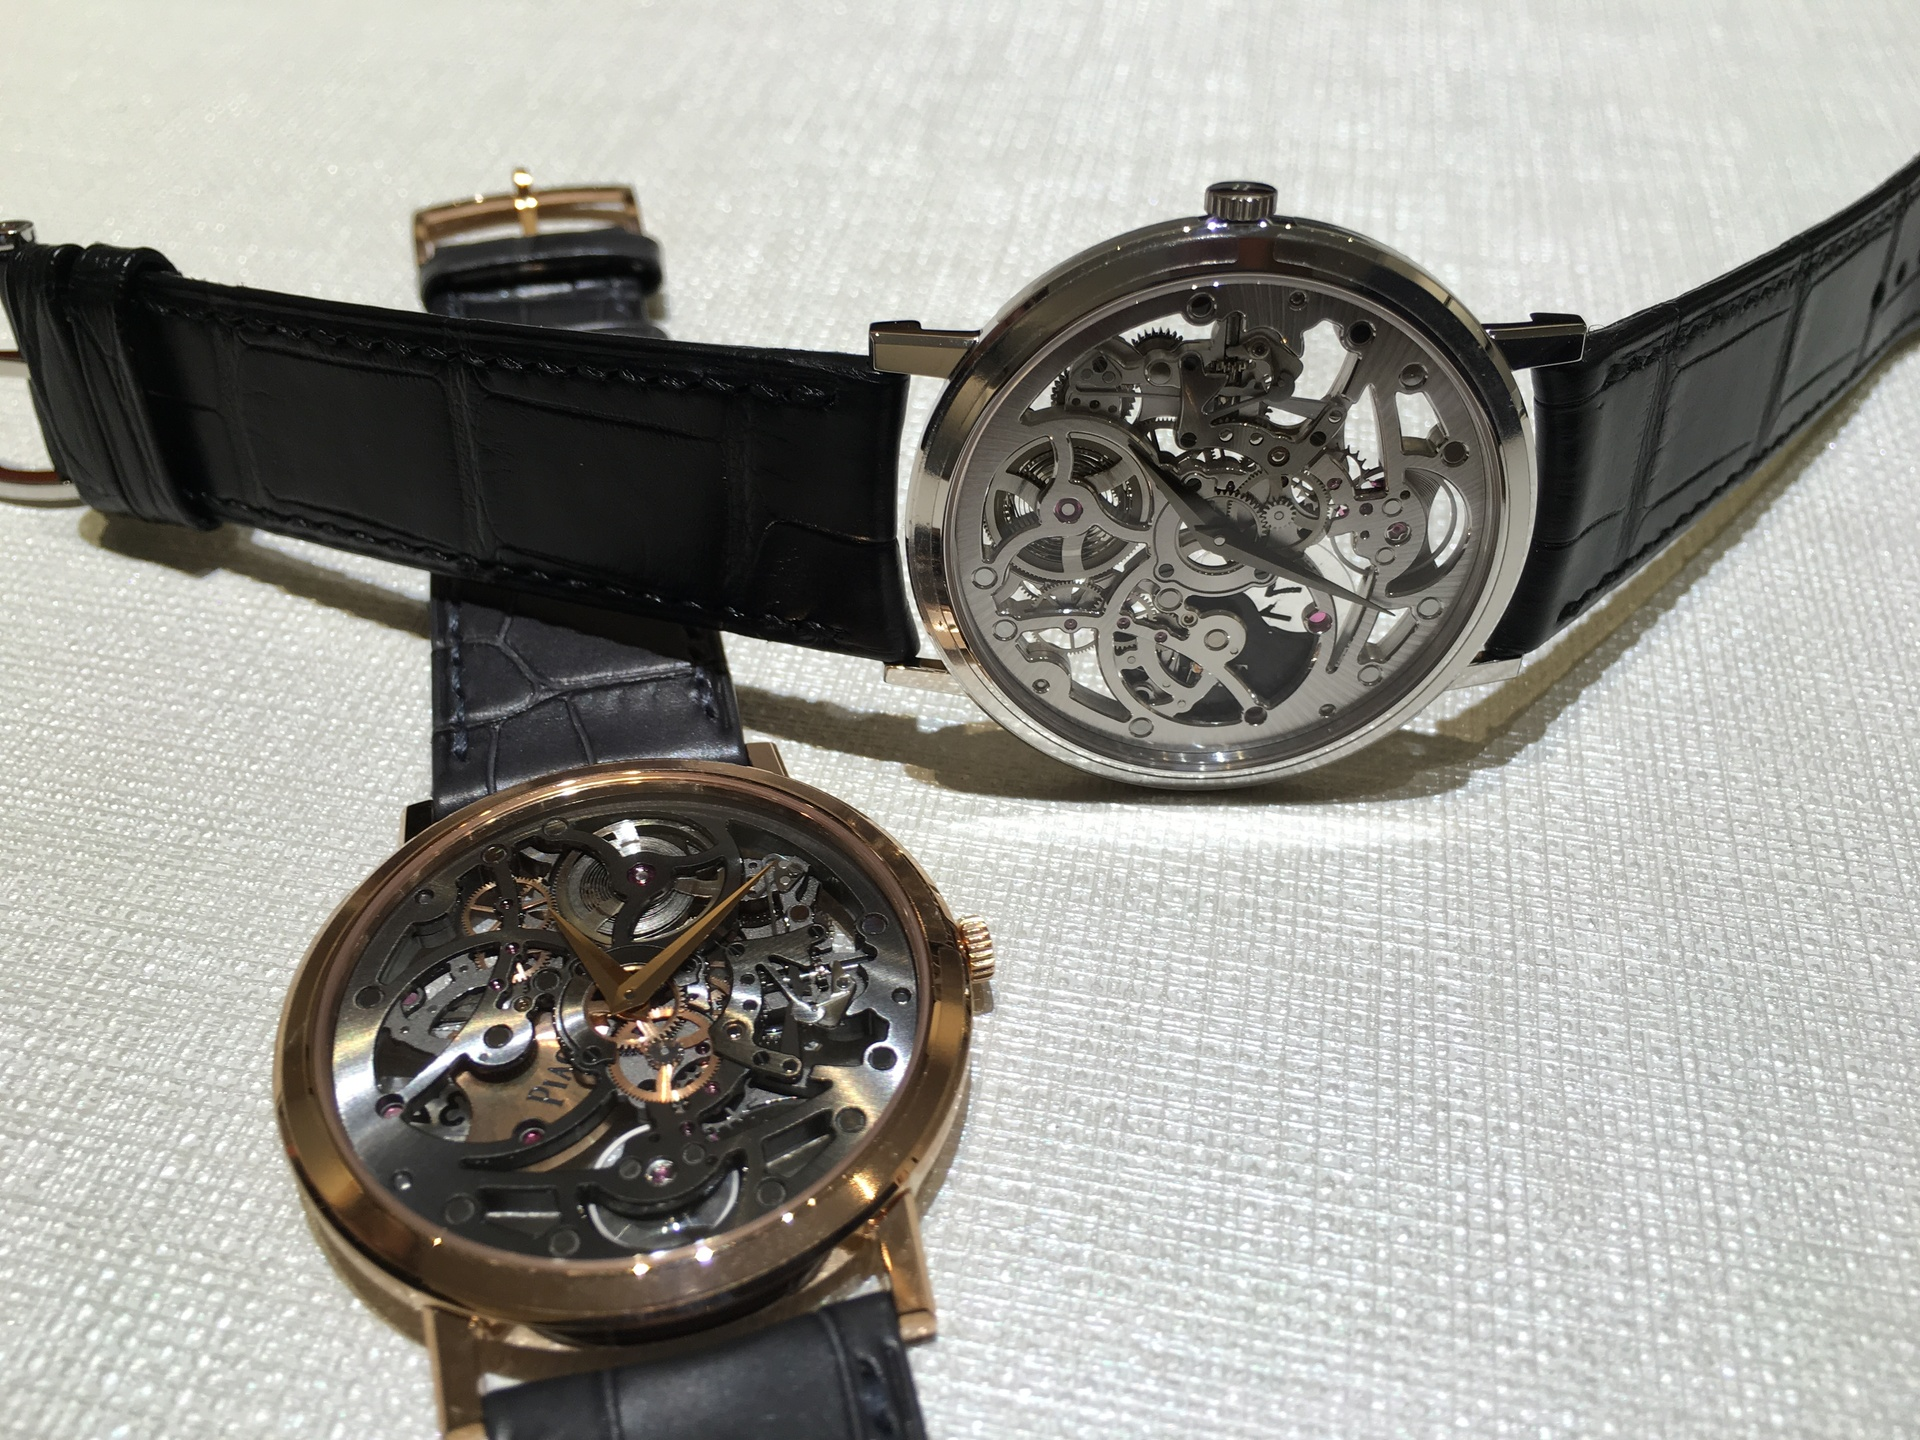 Two wristwatches on table | alonbj, precision, technology, time